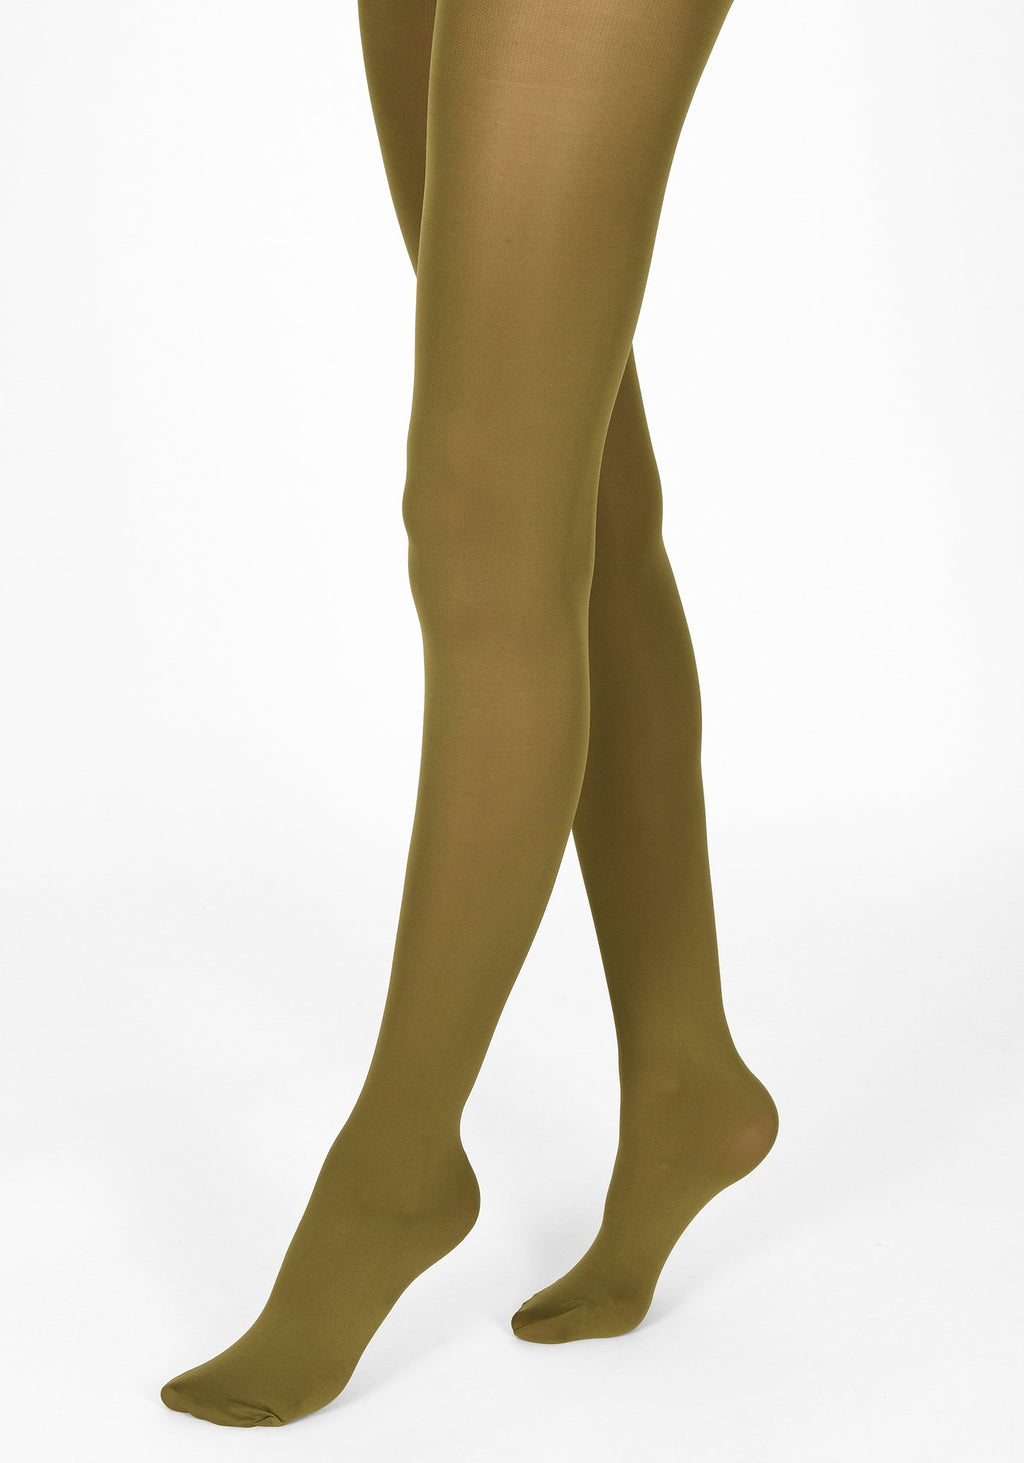 olive green tights 60 denier 1